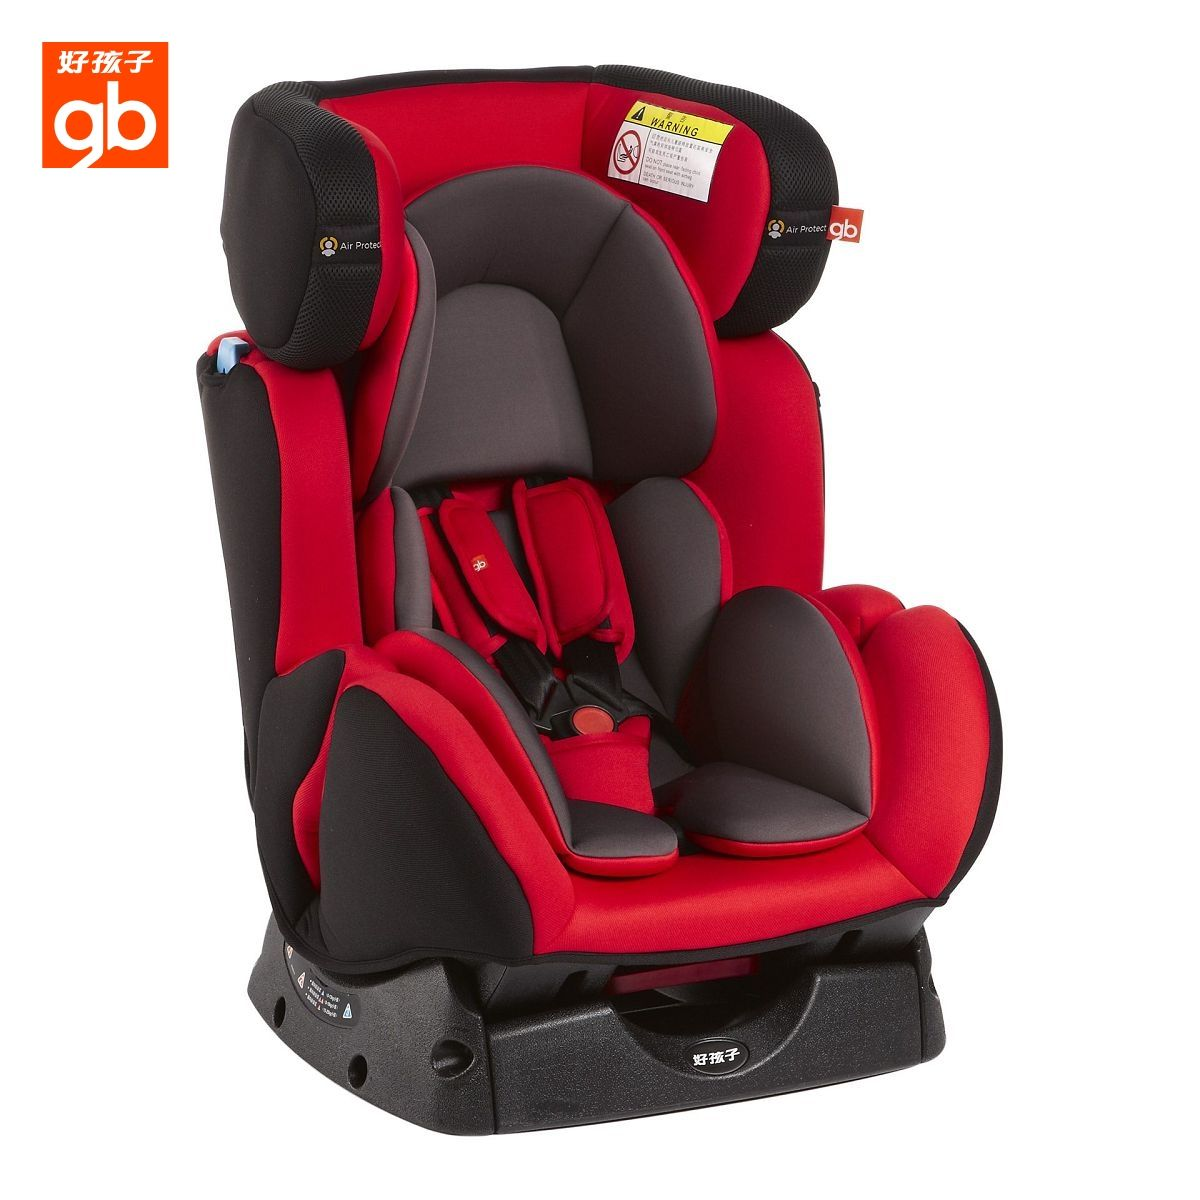 Goodbaby child car seat goodbaby kids baby sit chair CS858 European